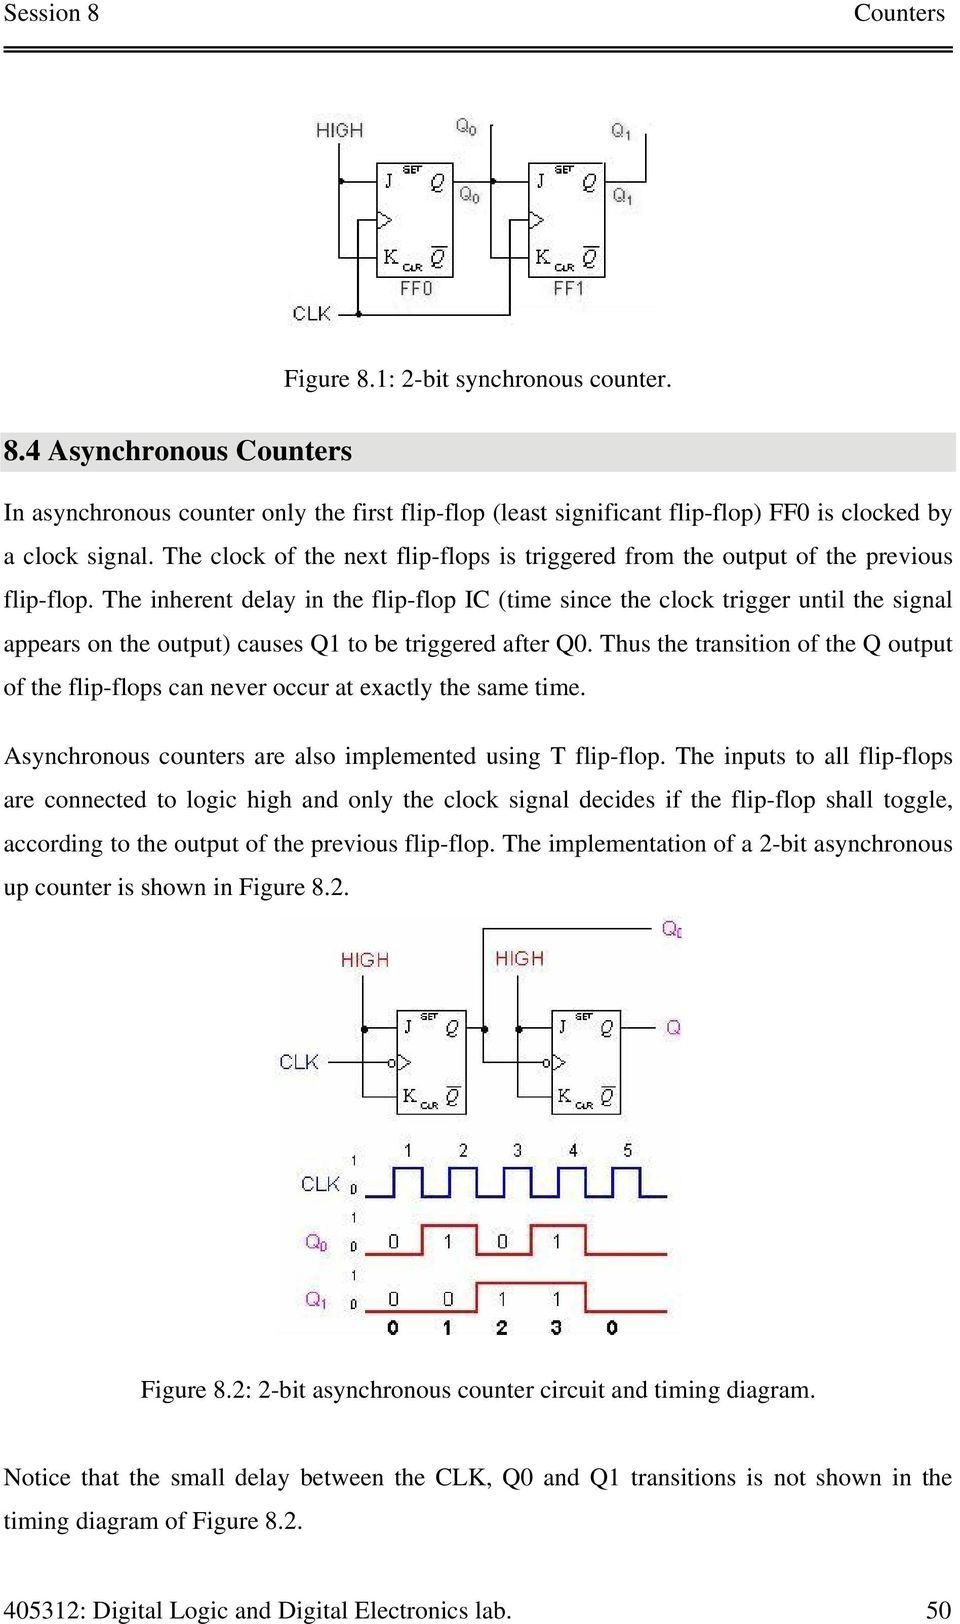 The inherent delay in the flip-flop IC (time since the clock trigger until the signal appears on the output) causes Q1 to be triggered after Q0.